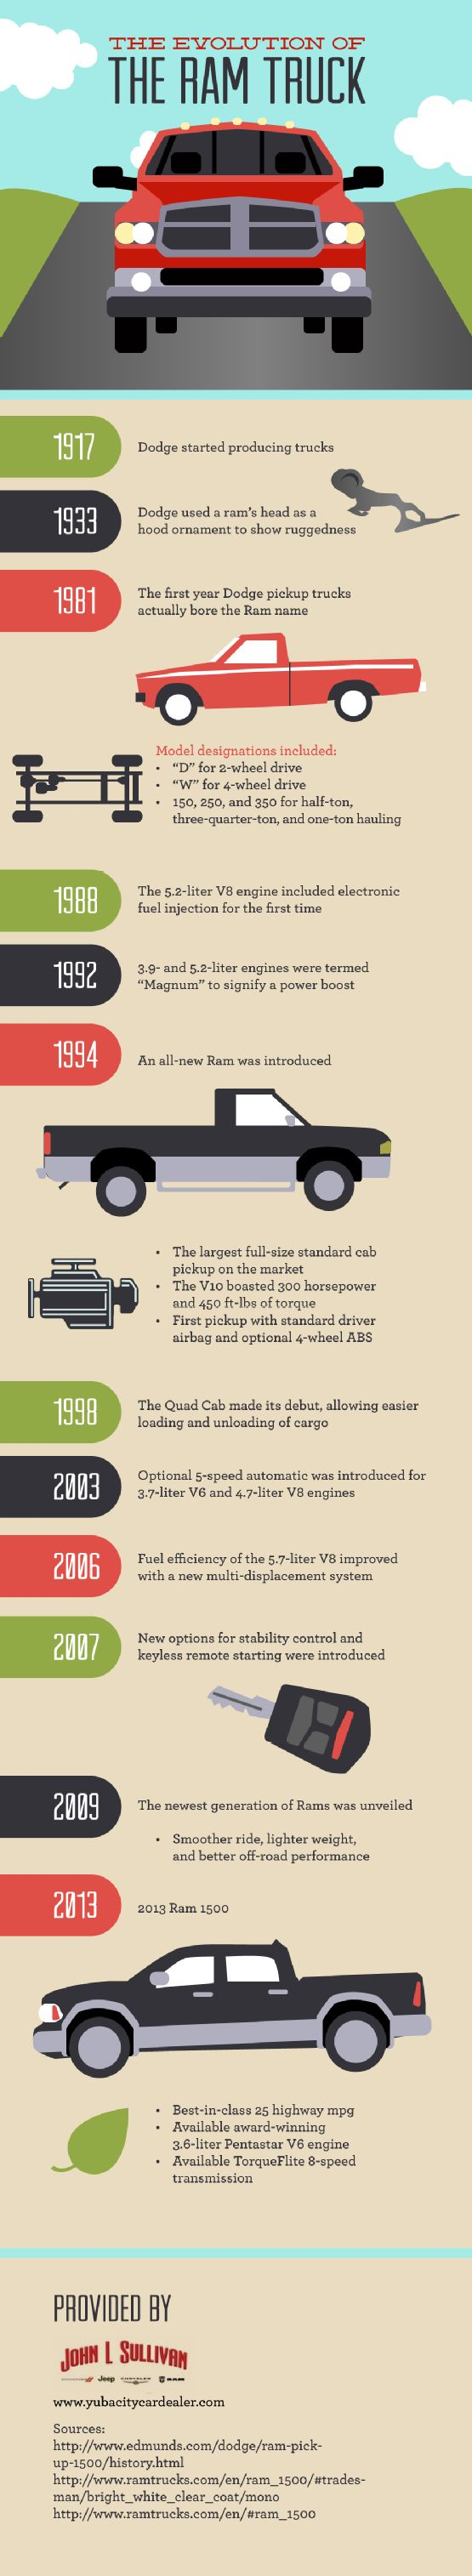 In 1994, an all-new Dodge Ram truck was introduced. This model offered the largest full-size standard cab pickup on the market as well as a V10 with 300 horsepower and 450 ft-lbs of torque! Find other impressive features by checking out this Dodge dealership infographic.